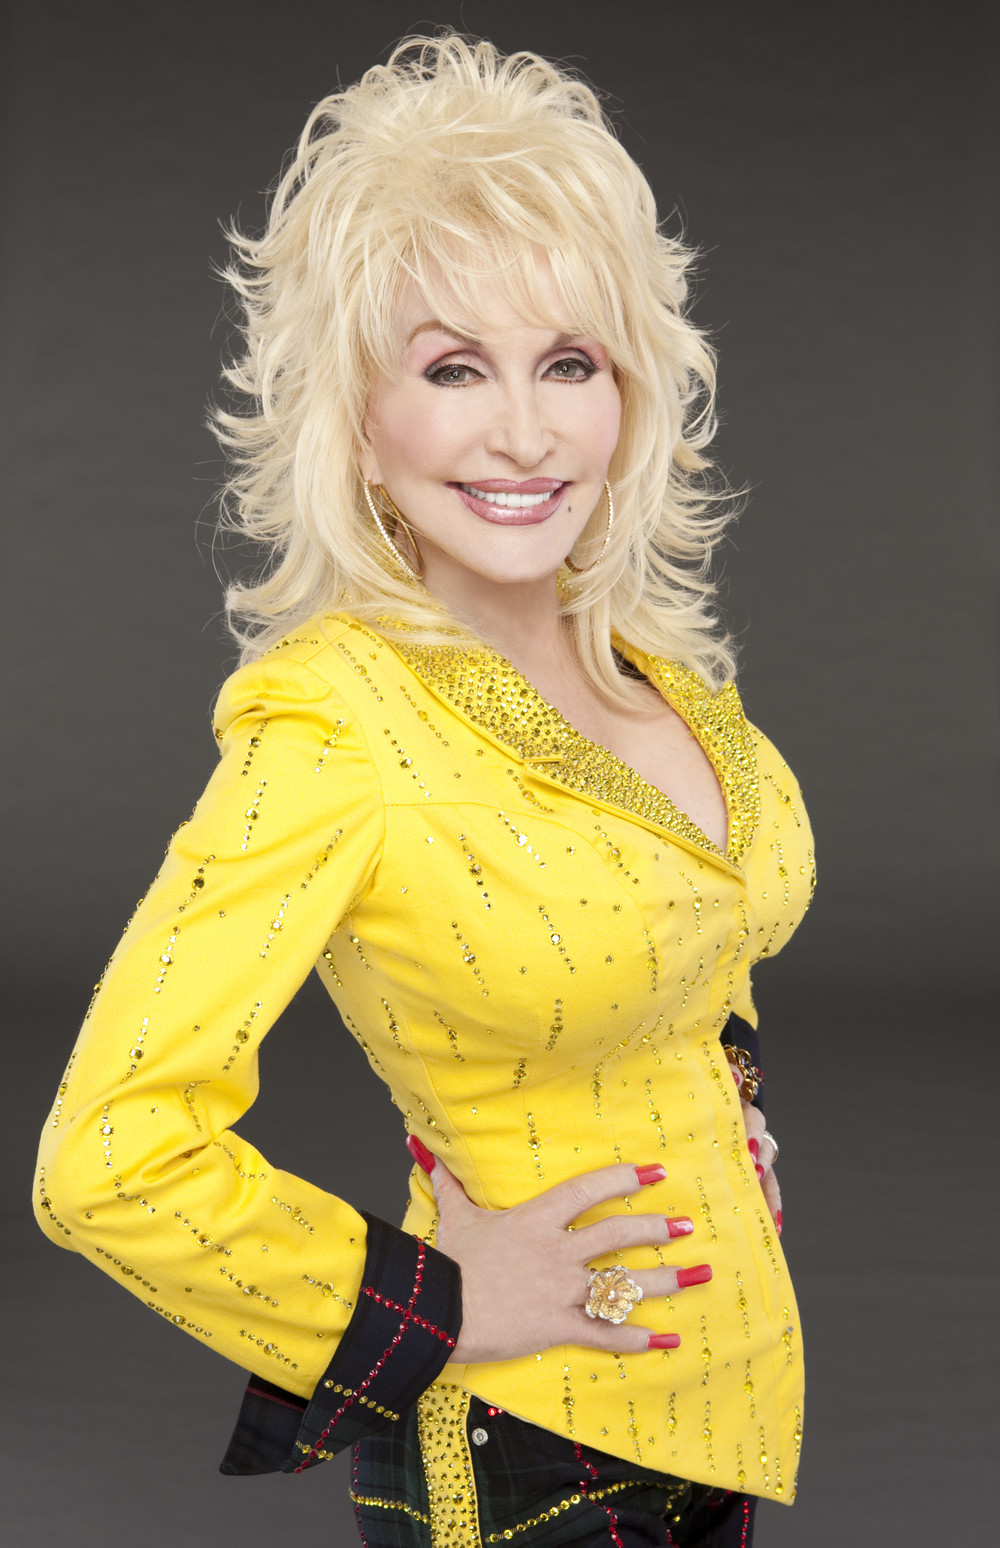 dolly parton - photo #2